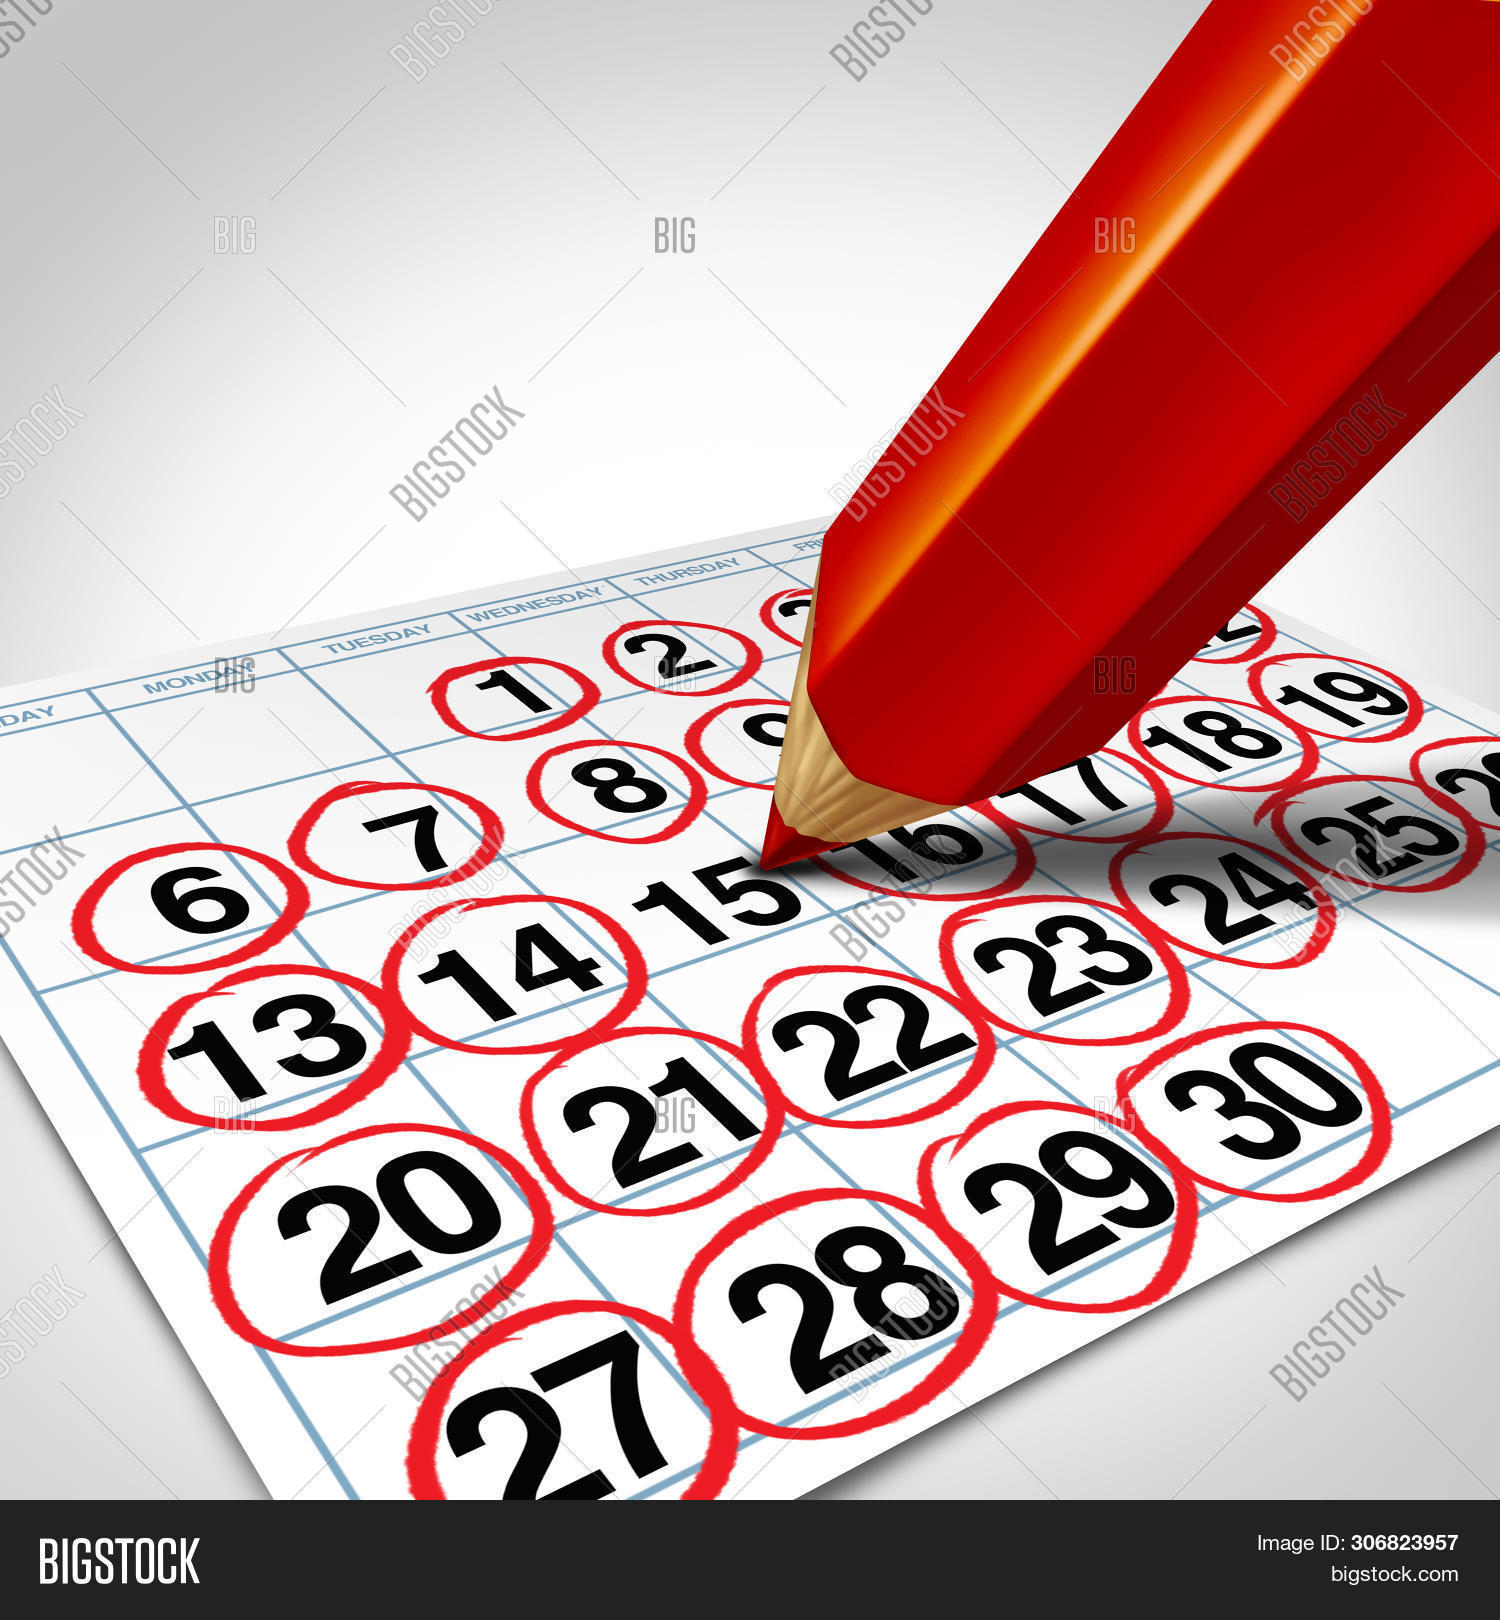 Busy Business Schedule Image & Photo (Free Trial) | Bigstock